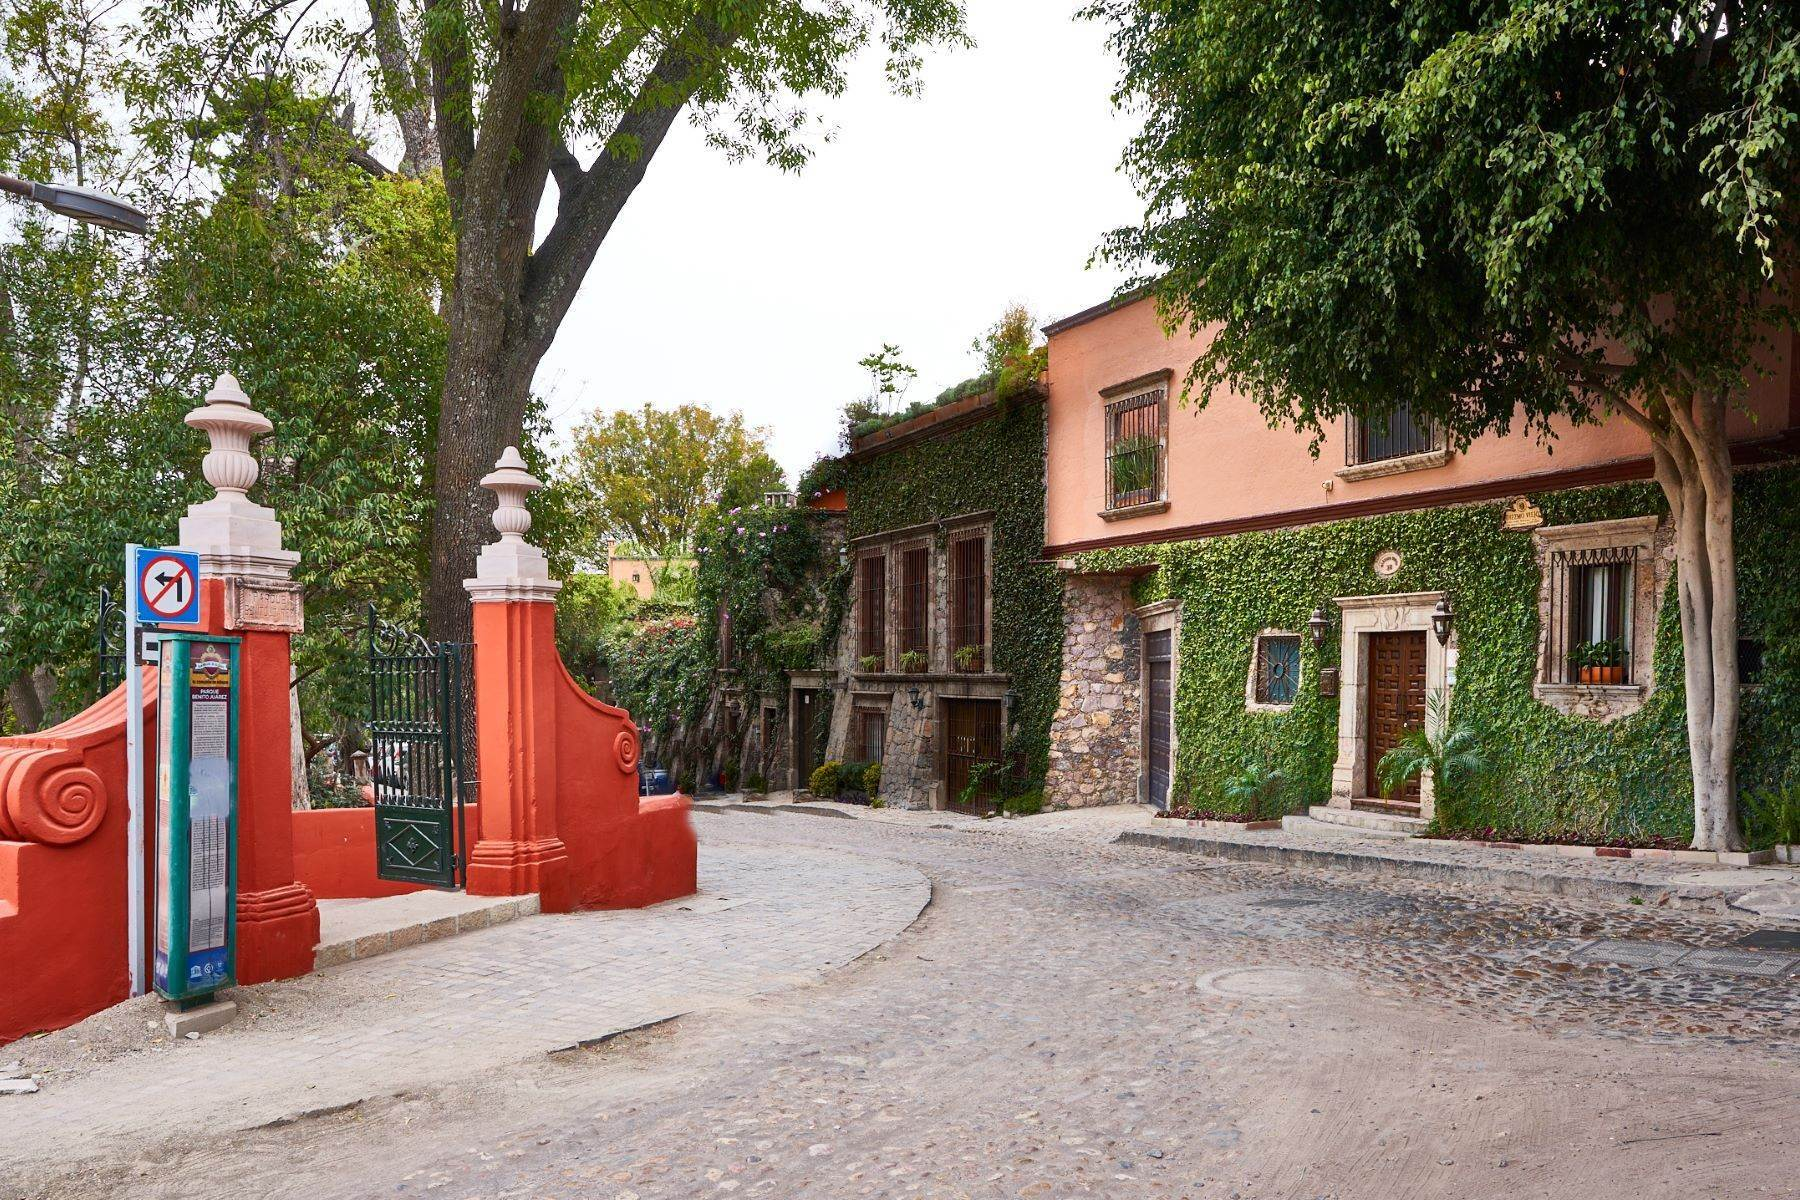 Single Family Homes for Sale at Diezmo Viejo 28 Diezmo Viejo San Miguel De Allende, Guanajuato 37700 Mexico